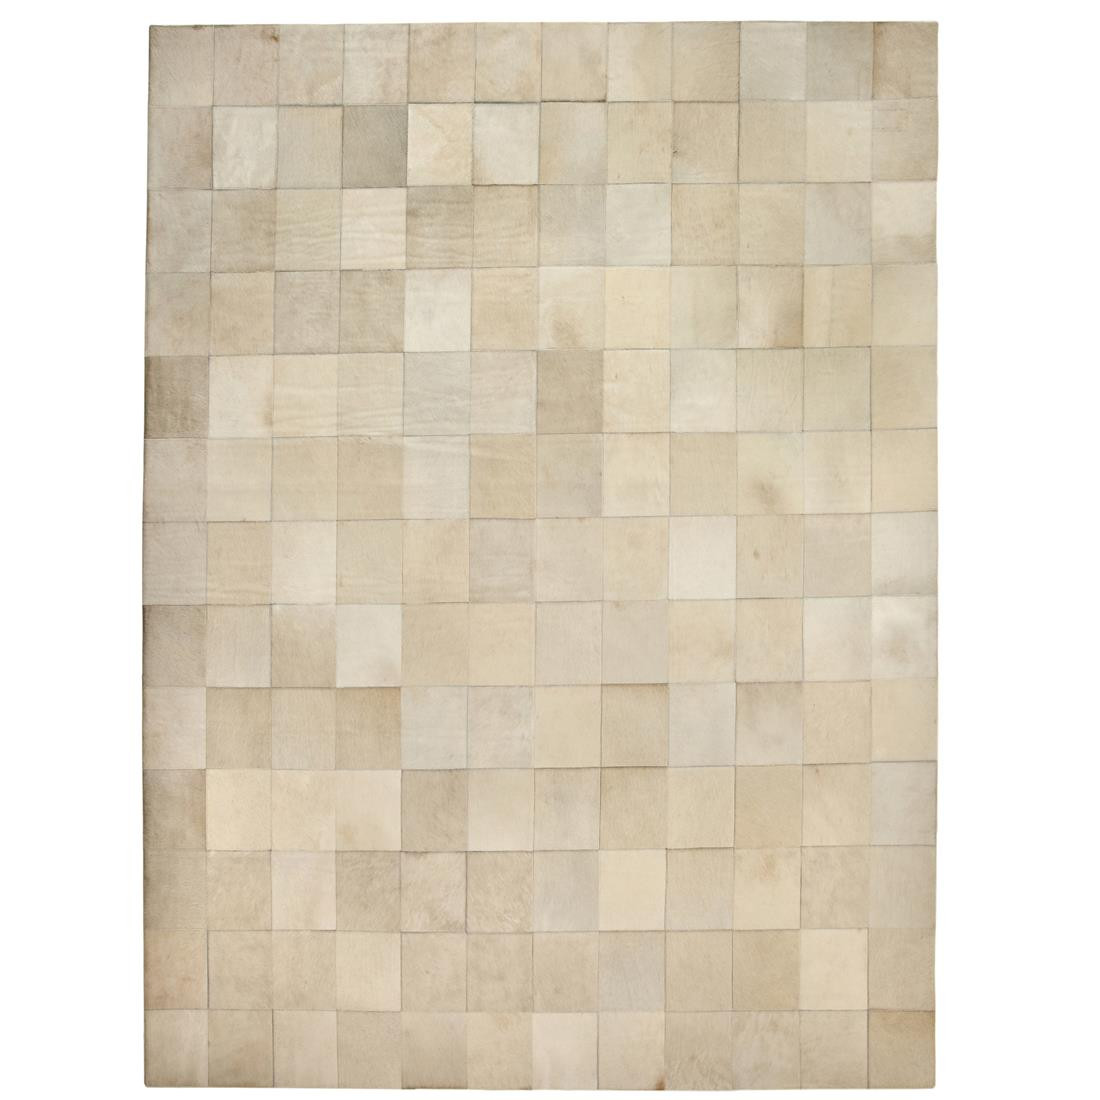 TAPETE COURO NATURAL GOLD LEAT - 2,40x3,40